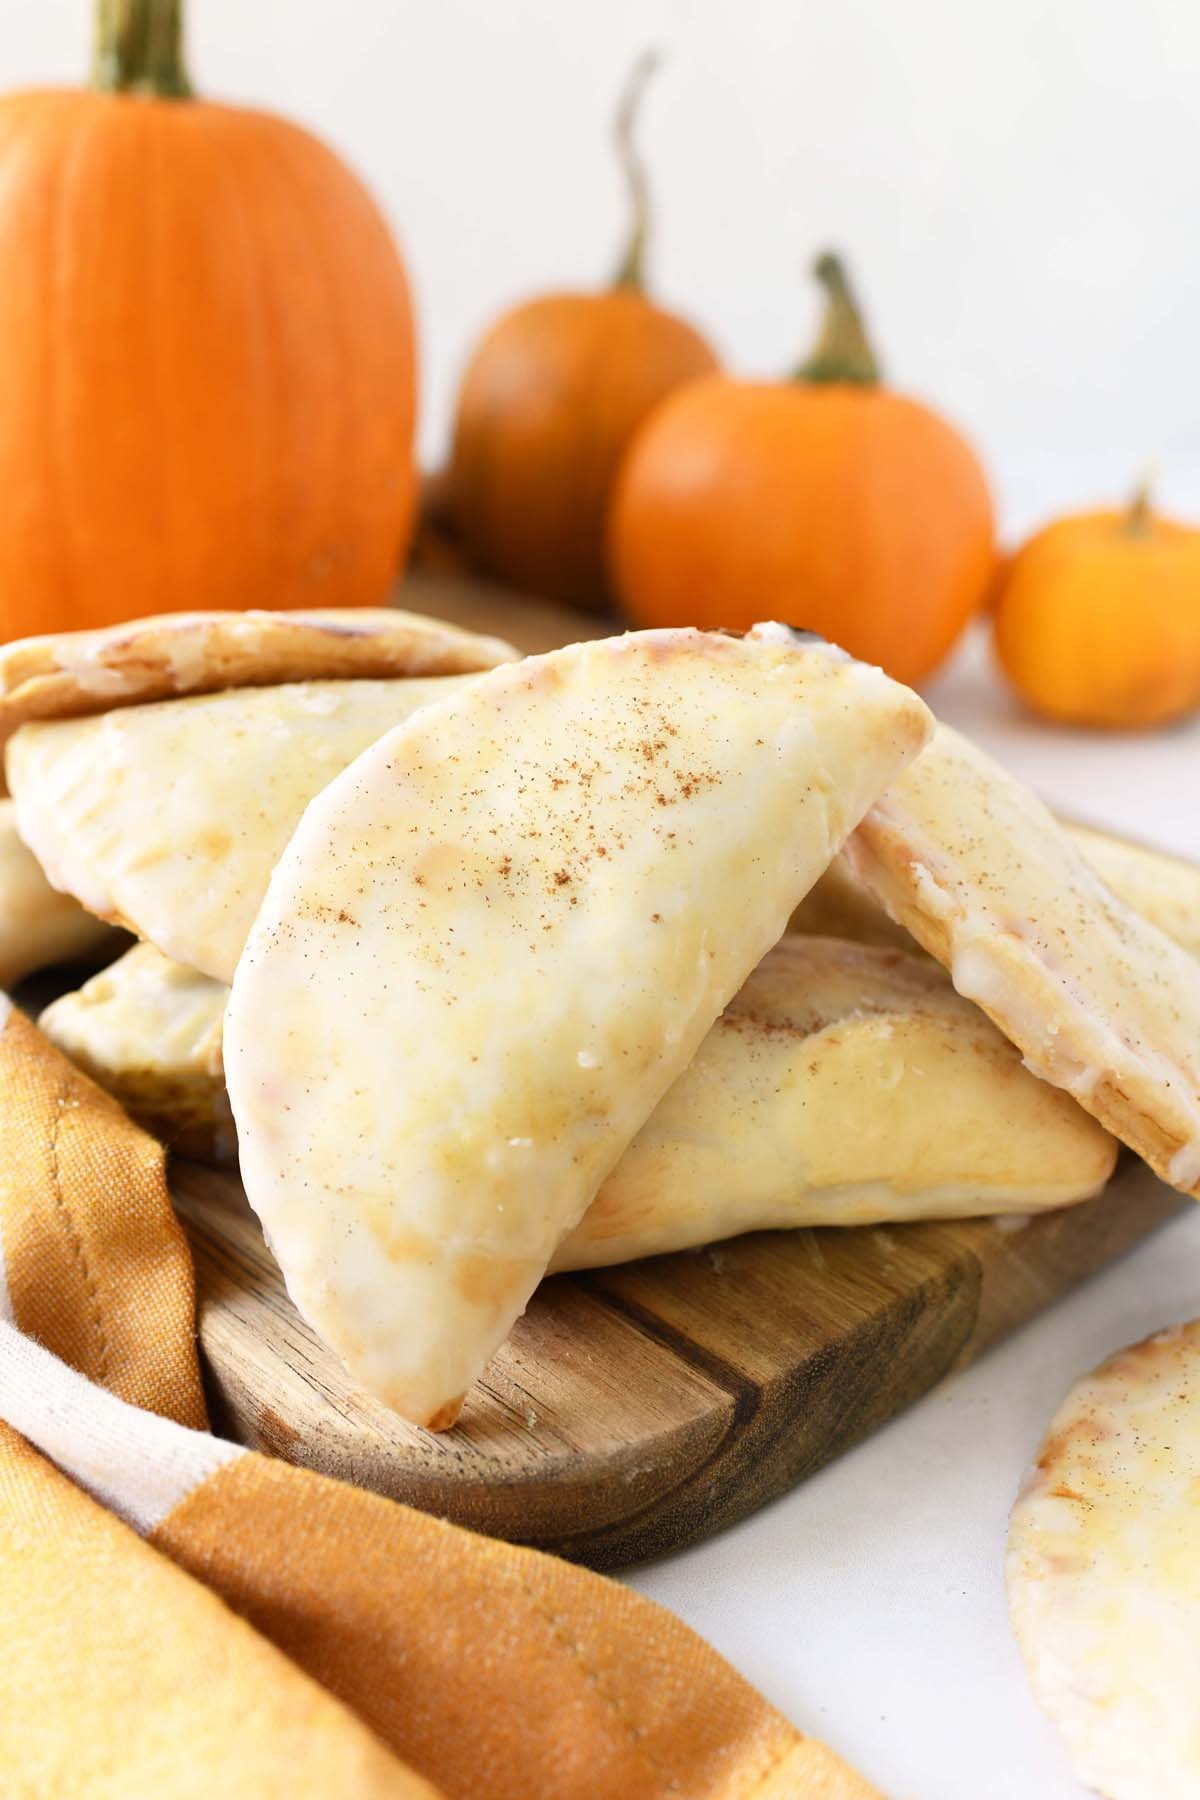 Pumpkin Hand Pies with Icing styled on a harvest wood board with pumpkins.